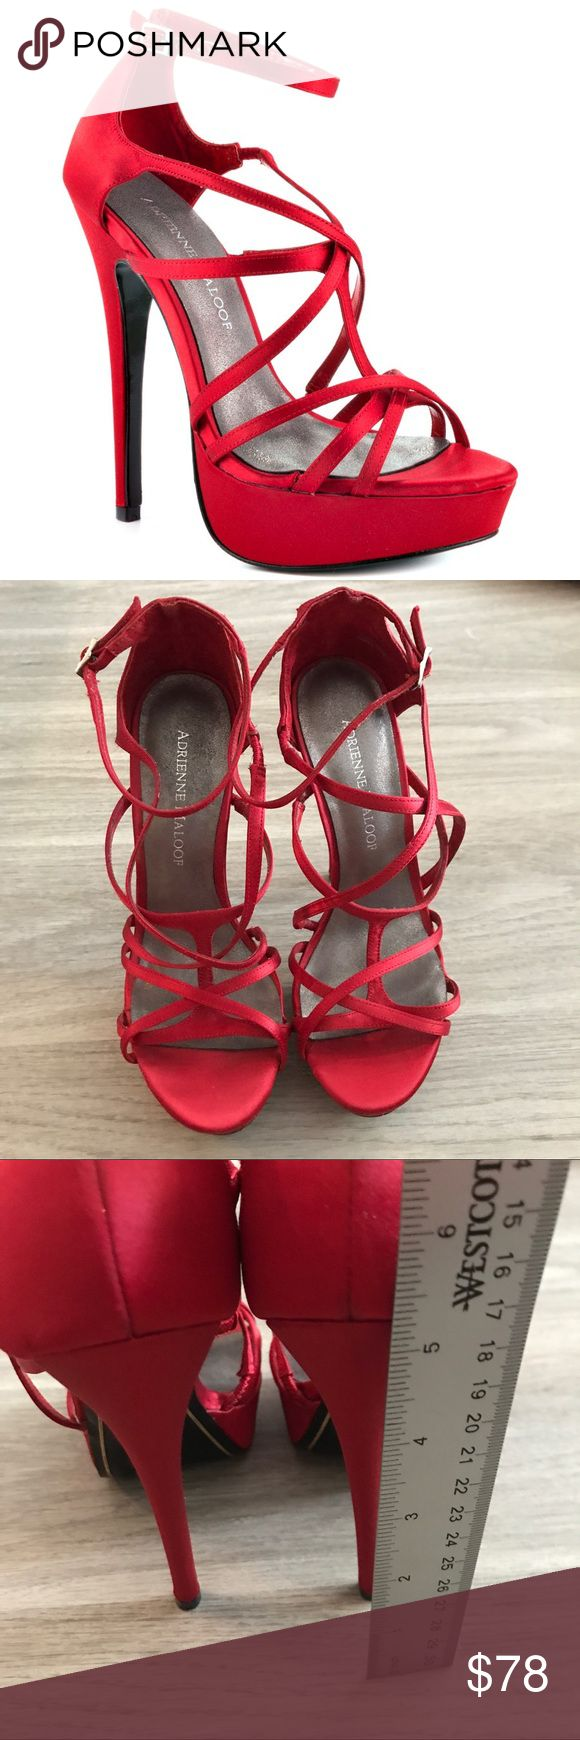 """Size 6.5 Adrienne Maloof Ysabel Satin Heel You'll love the Ysabel! This sandal has a bright satin upper and straps. A 5 1/2"""" heel and 1"""" platform complete the shoe. There are light signs of wear on the sole but the upper is in new condition. Adrienne Maloof Shoes Heels"""